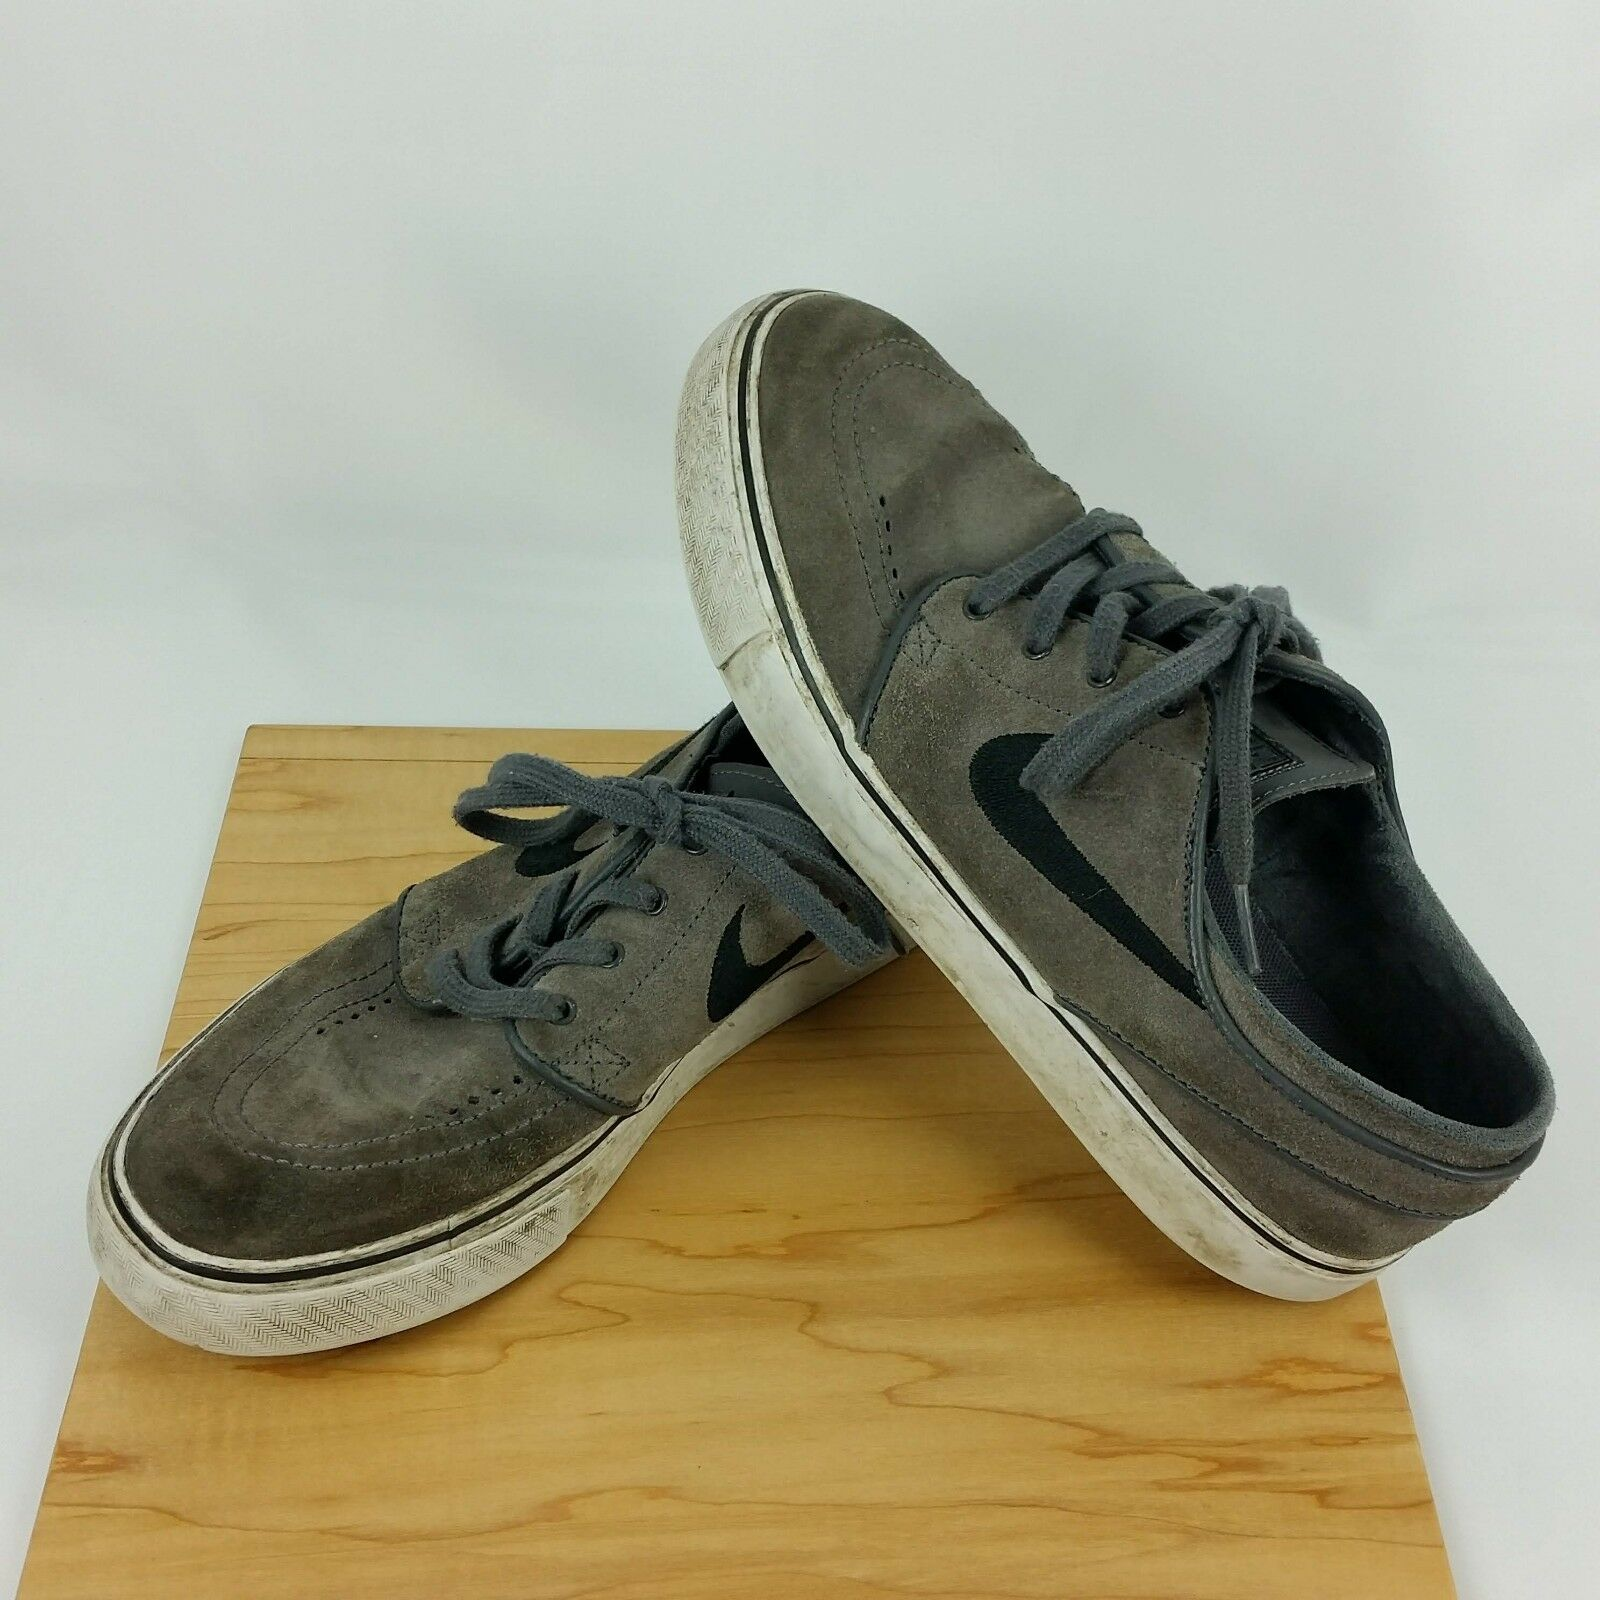 Nike Zoom Stefan Janoski SB Gray Skateboarding Shoes Men's Size 8 Black Swoosh